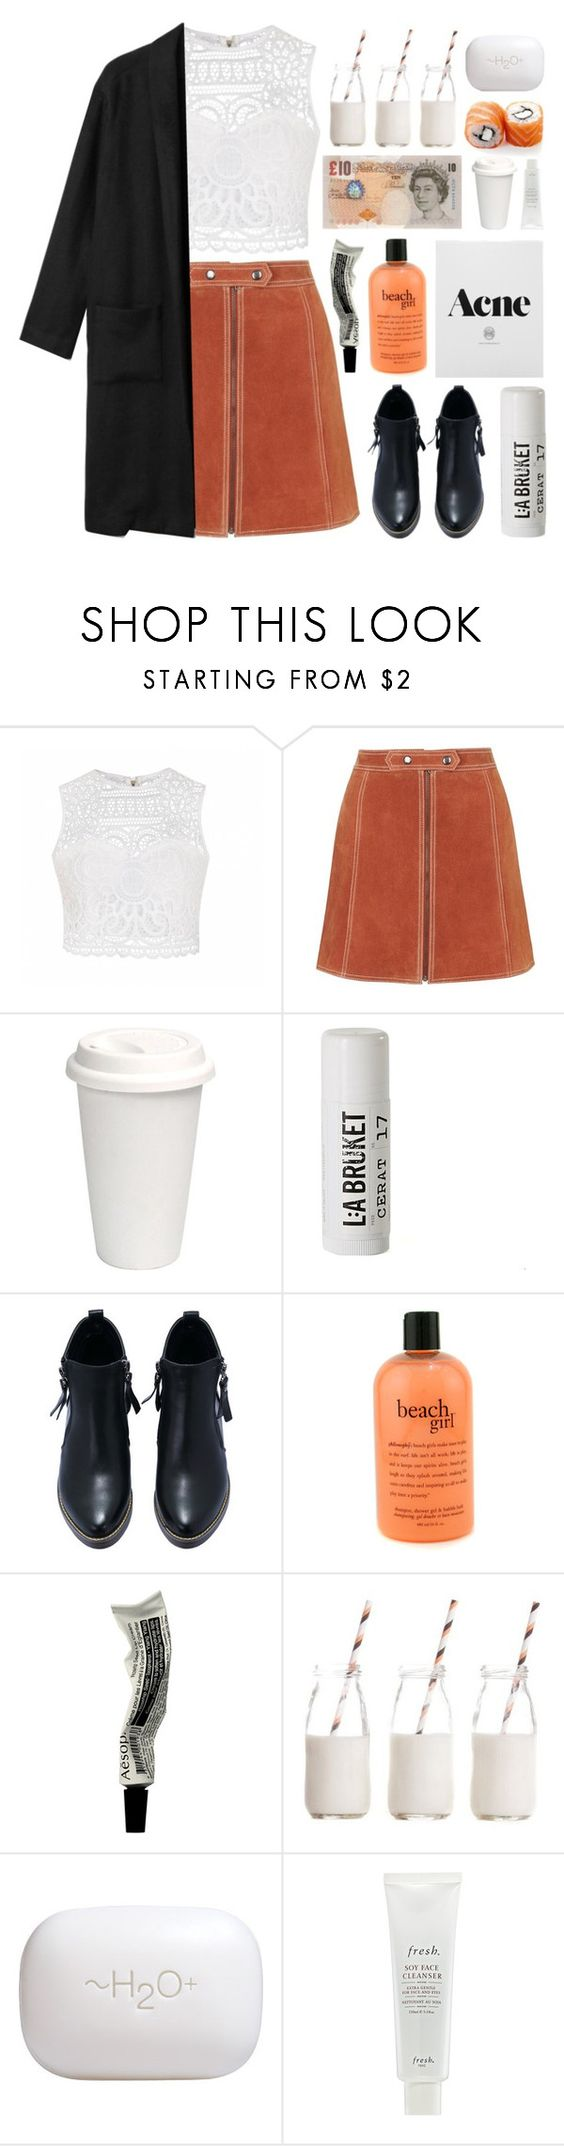 """""""Act like you know me, but you never will"""" by pickiestpeach ❤ liked on Polyvore featuring Ally Fashion, Topshop, L:A Bruket, philosophy, Aesop, Dress My Cupcake, H2O+ and Fresh"""